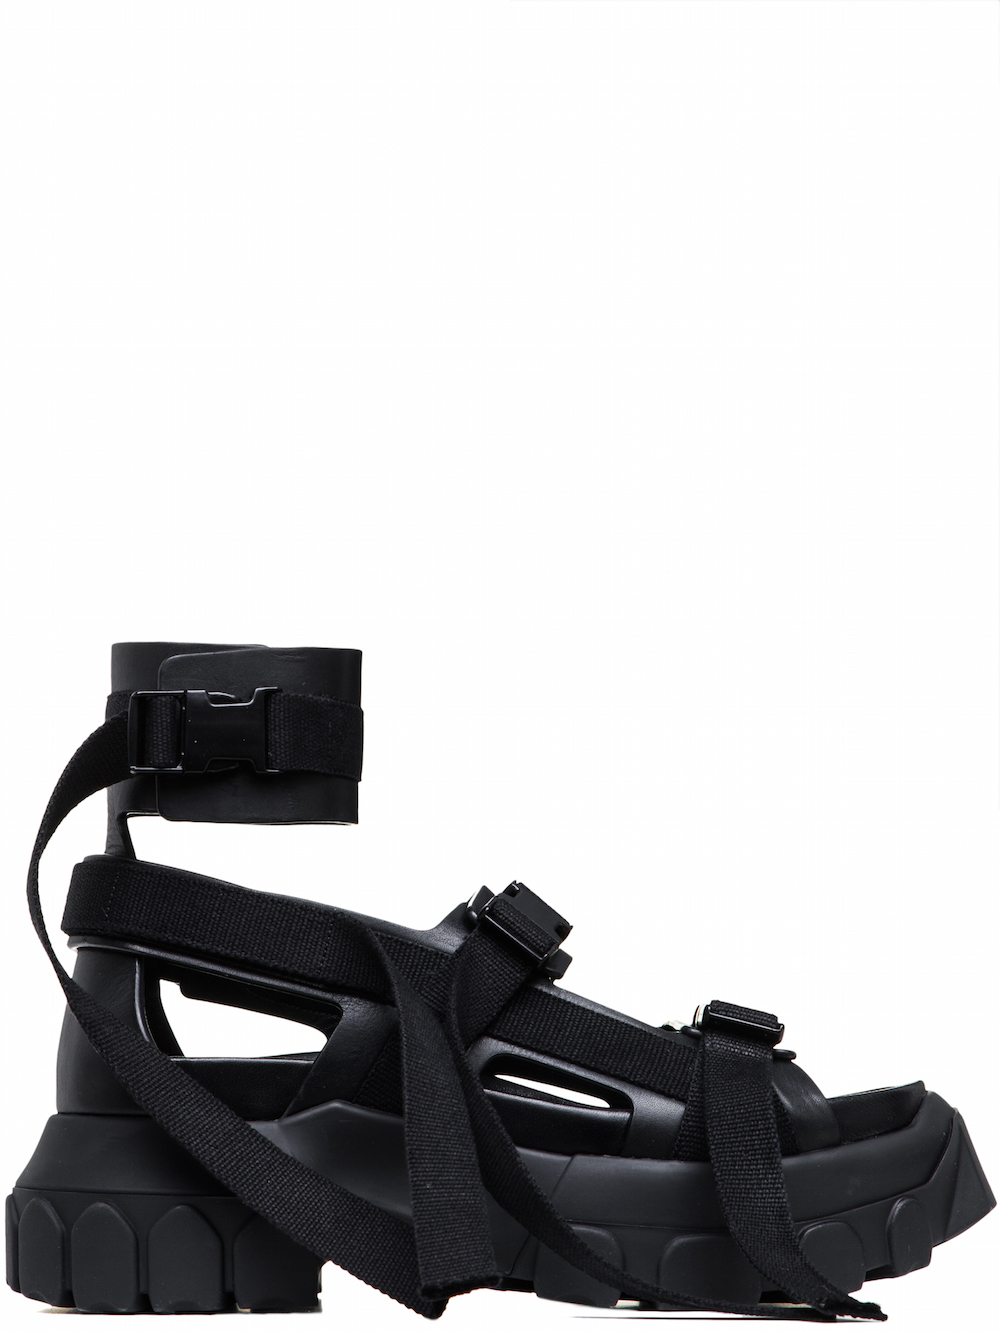 buy cheap latest collections Rick Owens Hiking Spartan sandals buy cheap popular R2yksODmC